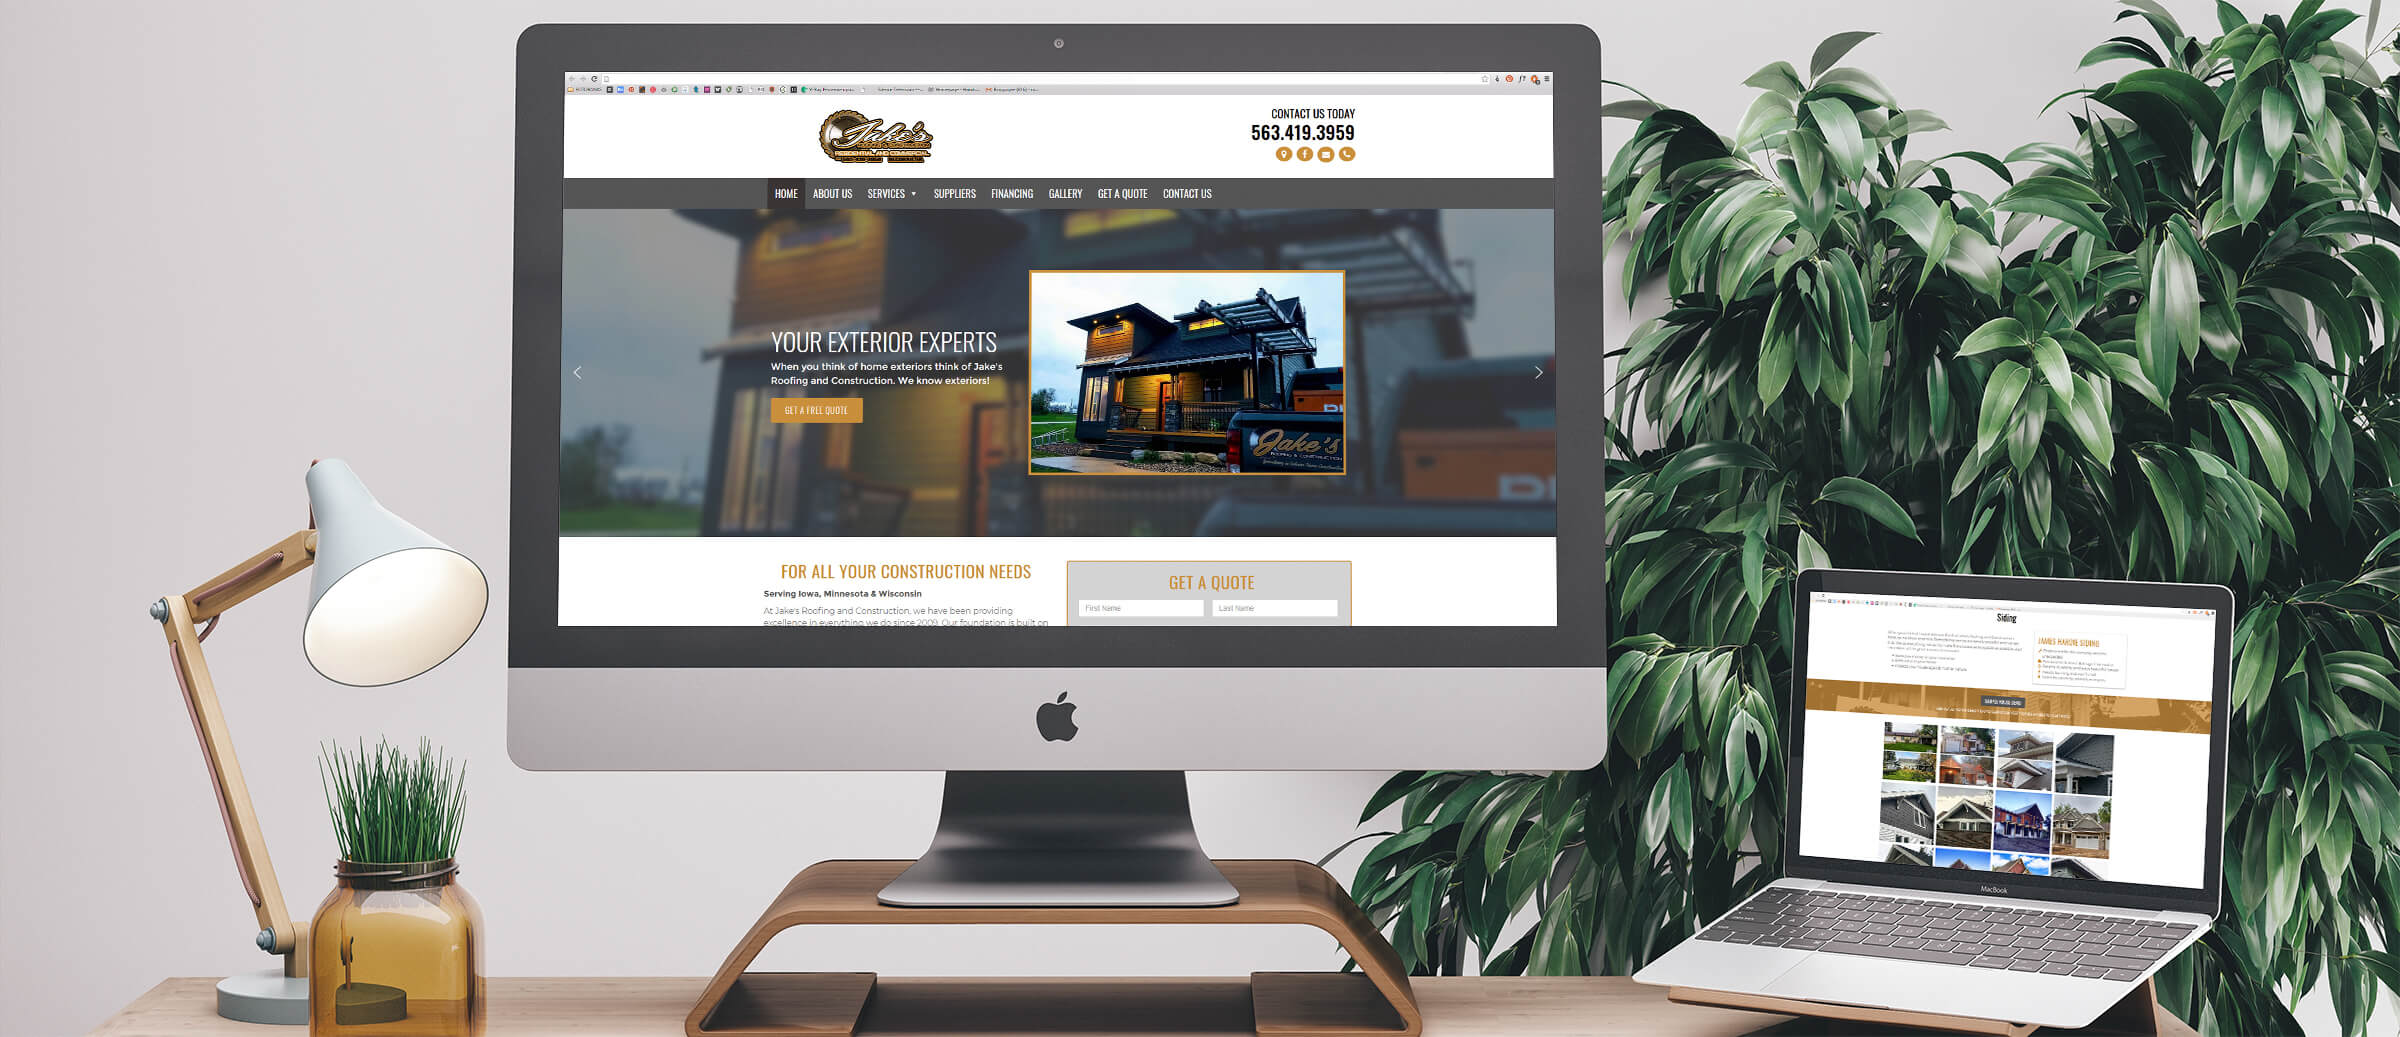 Jake's Roofing & Construction's website on computer and laptop